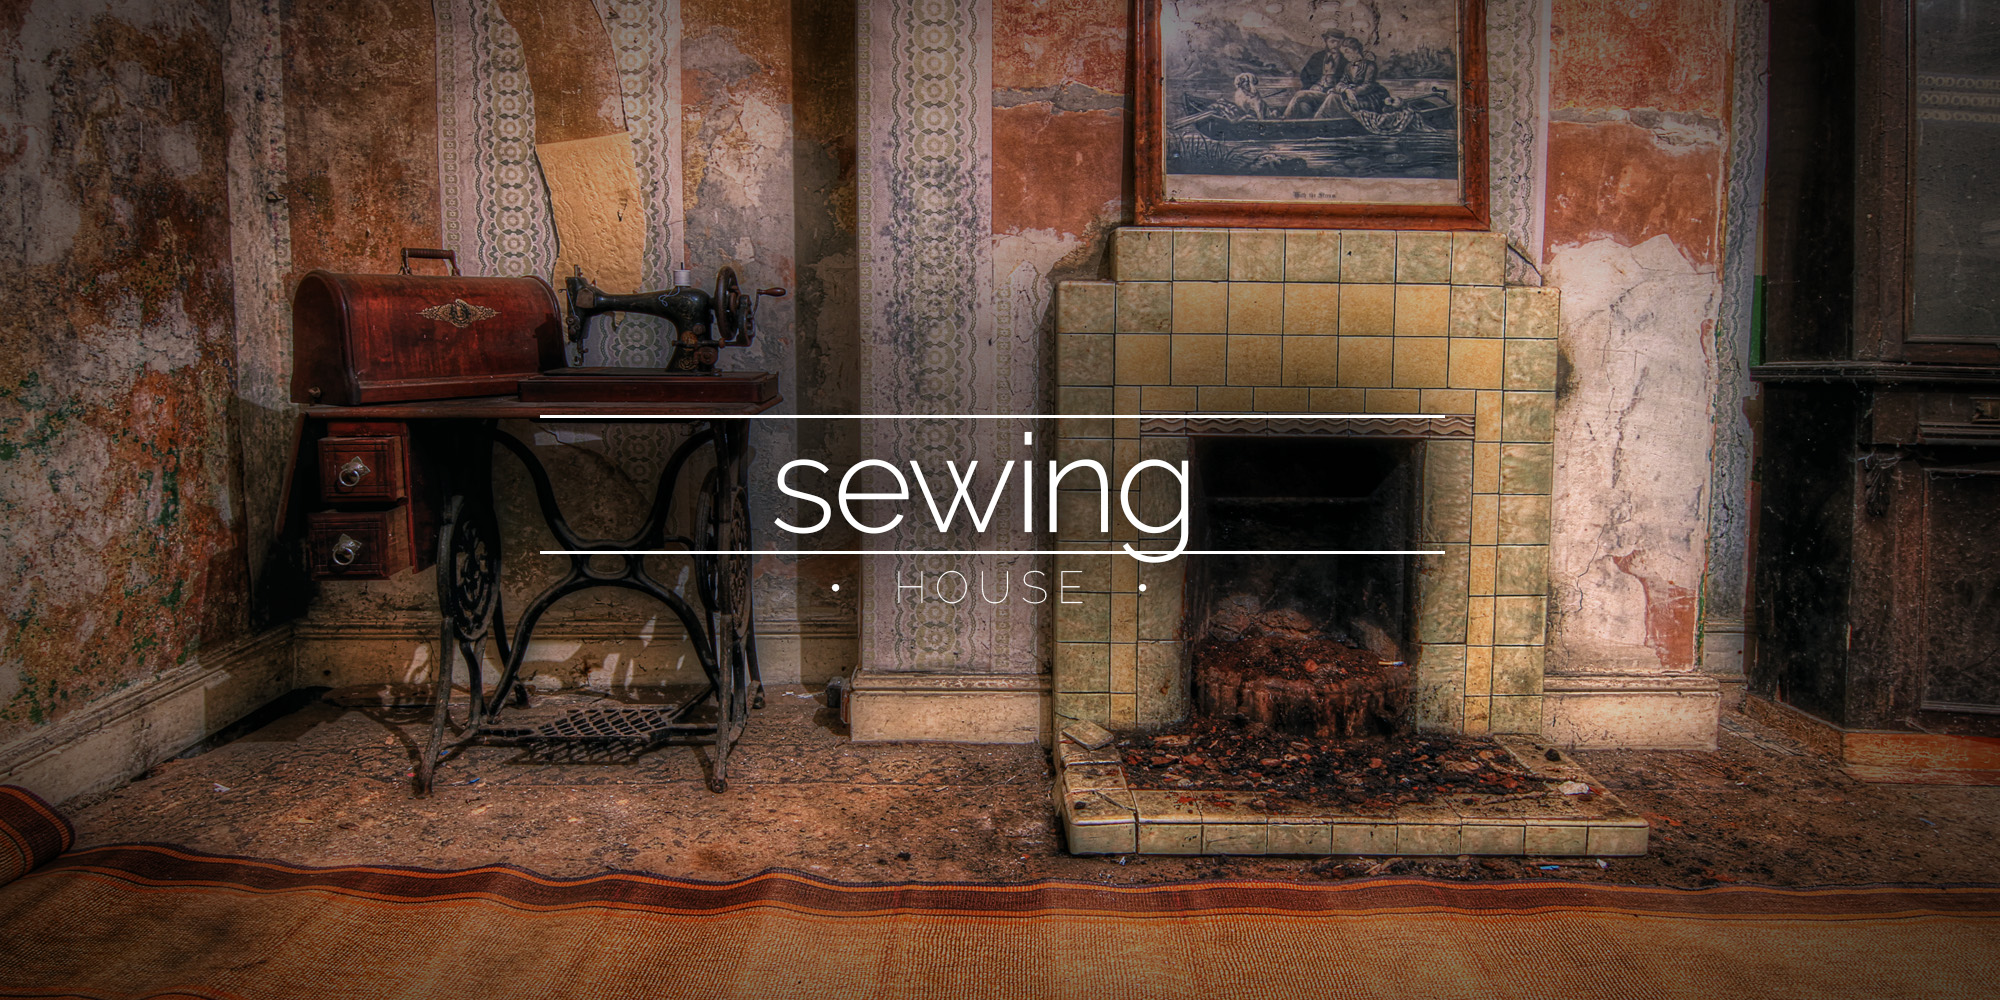 The Sewing House